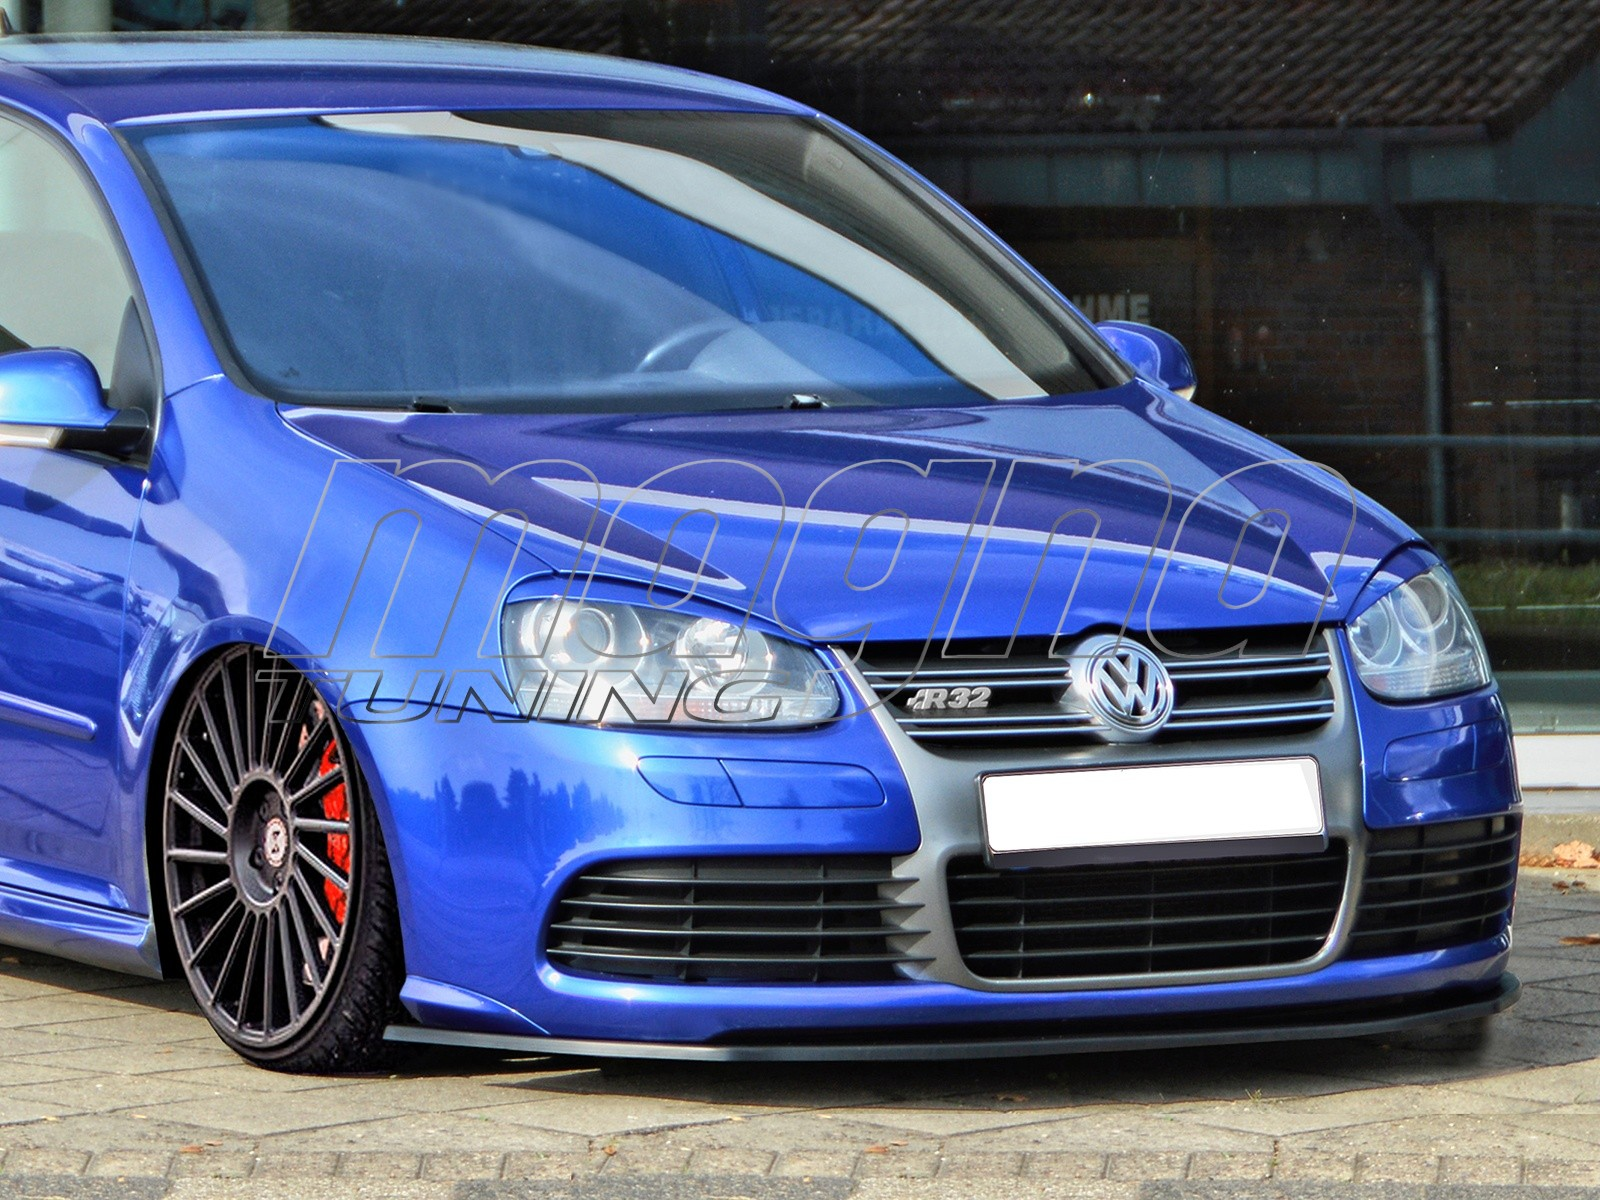 vw golf 5 r32 iris front bumper extension. Black Bedroom Furniture Sets. Home Design Ideas